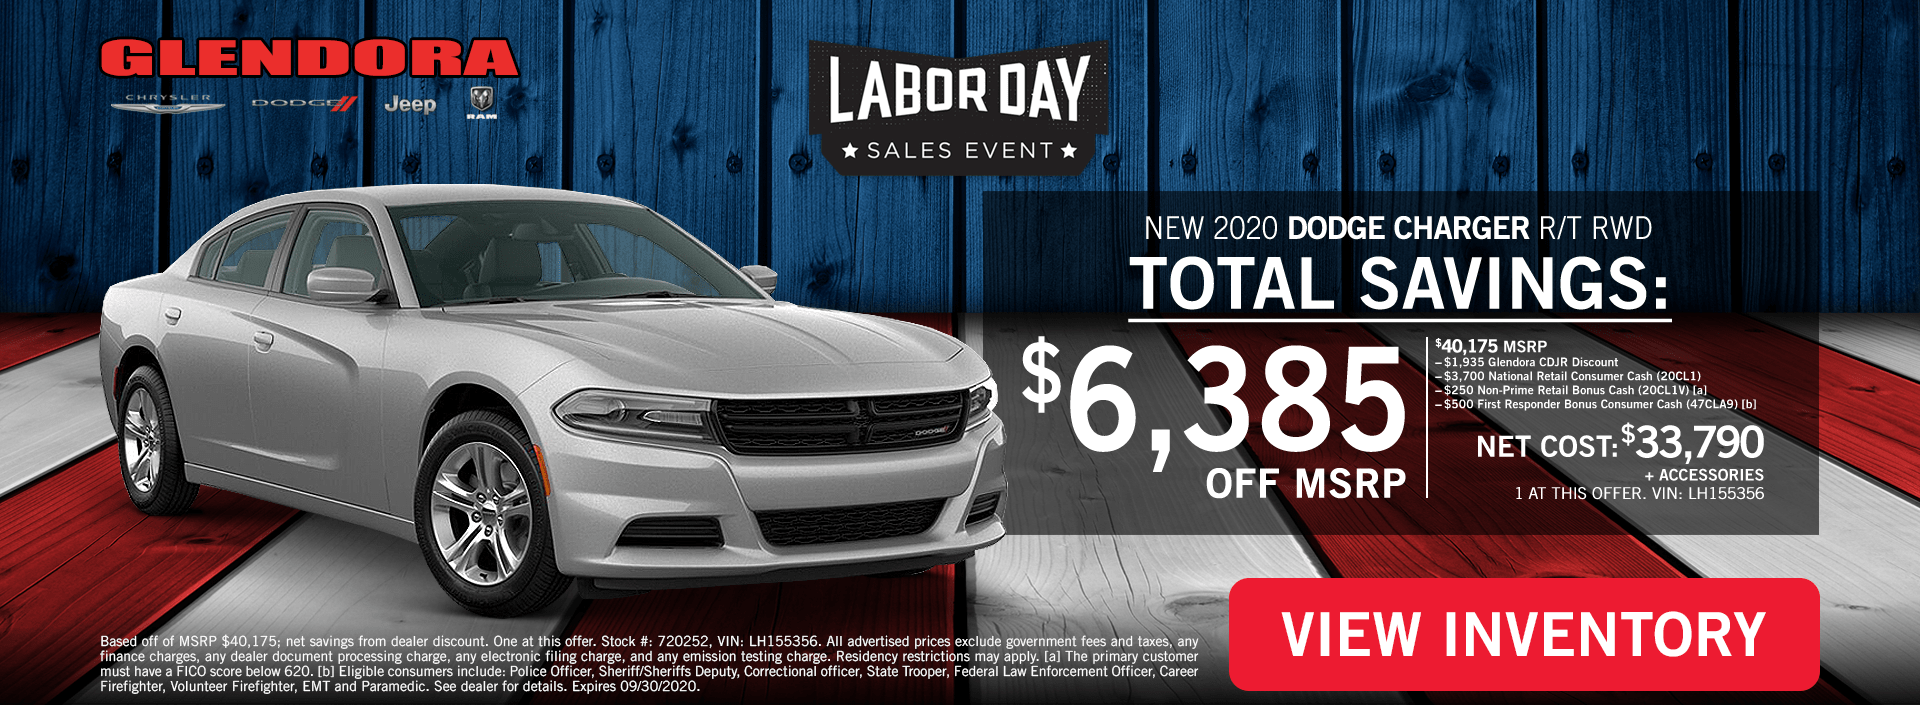 Labor Day Deals - Dodge Charger